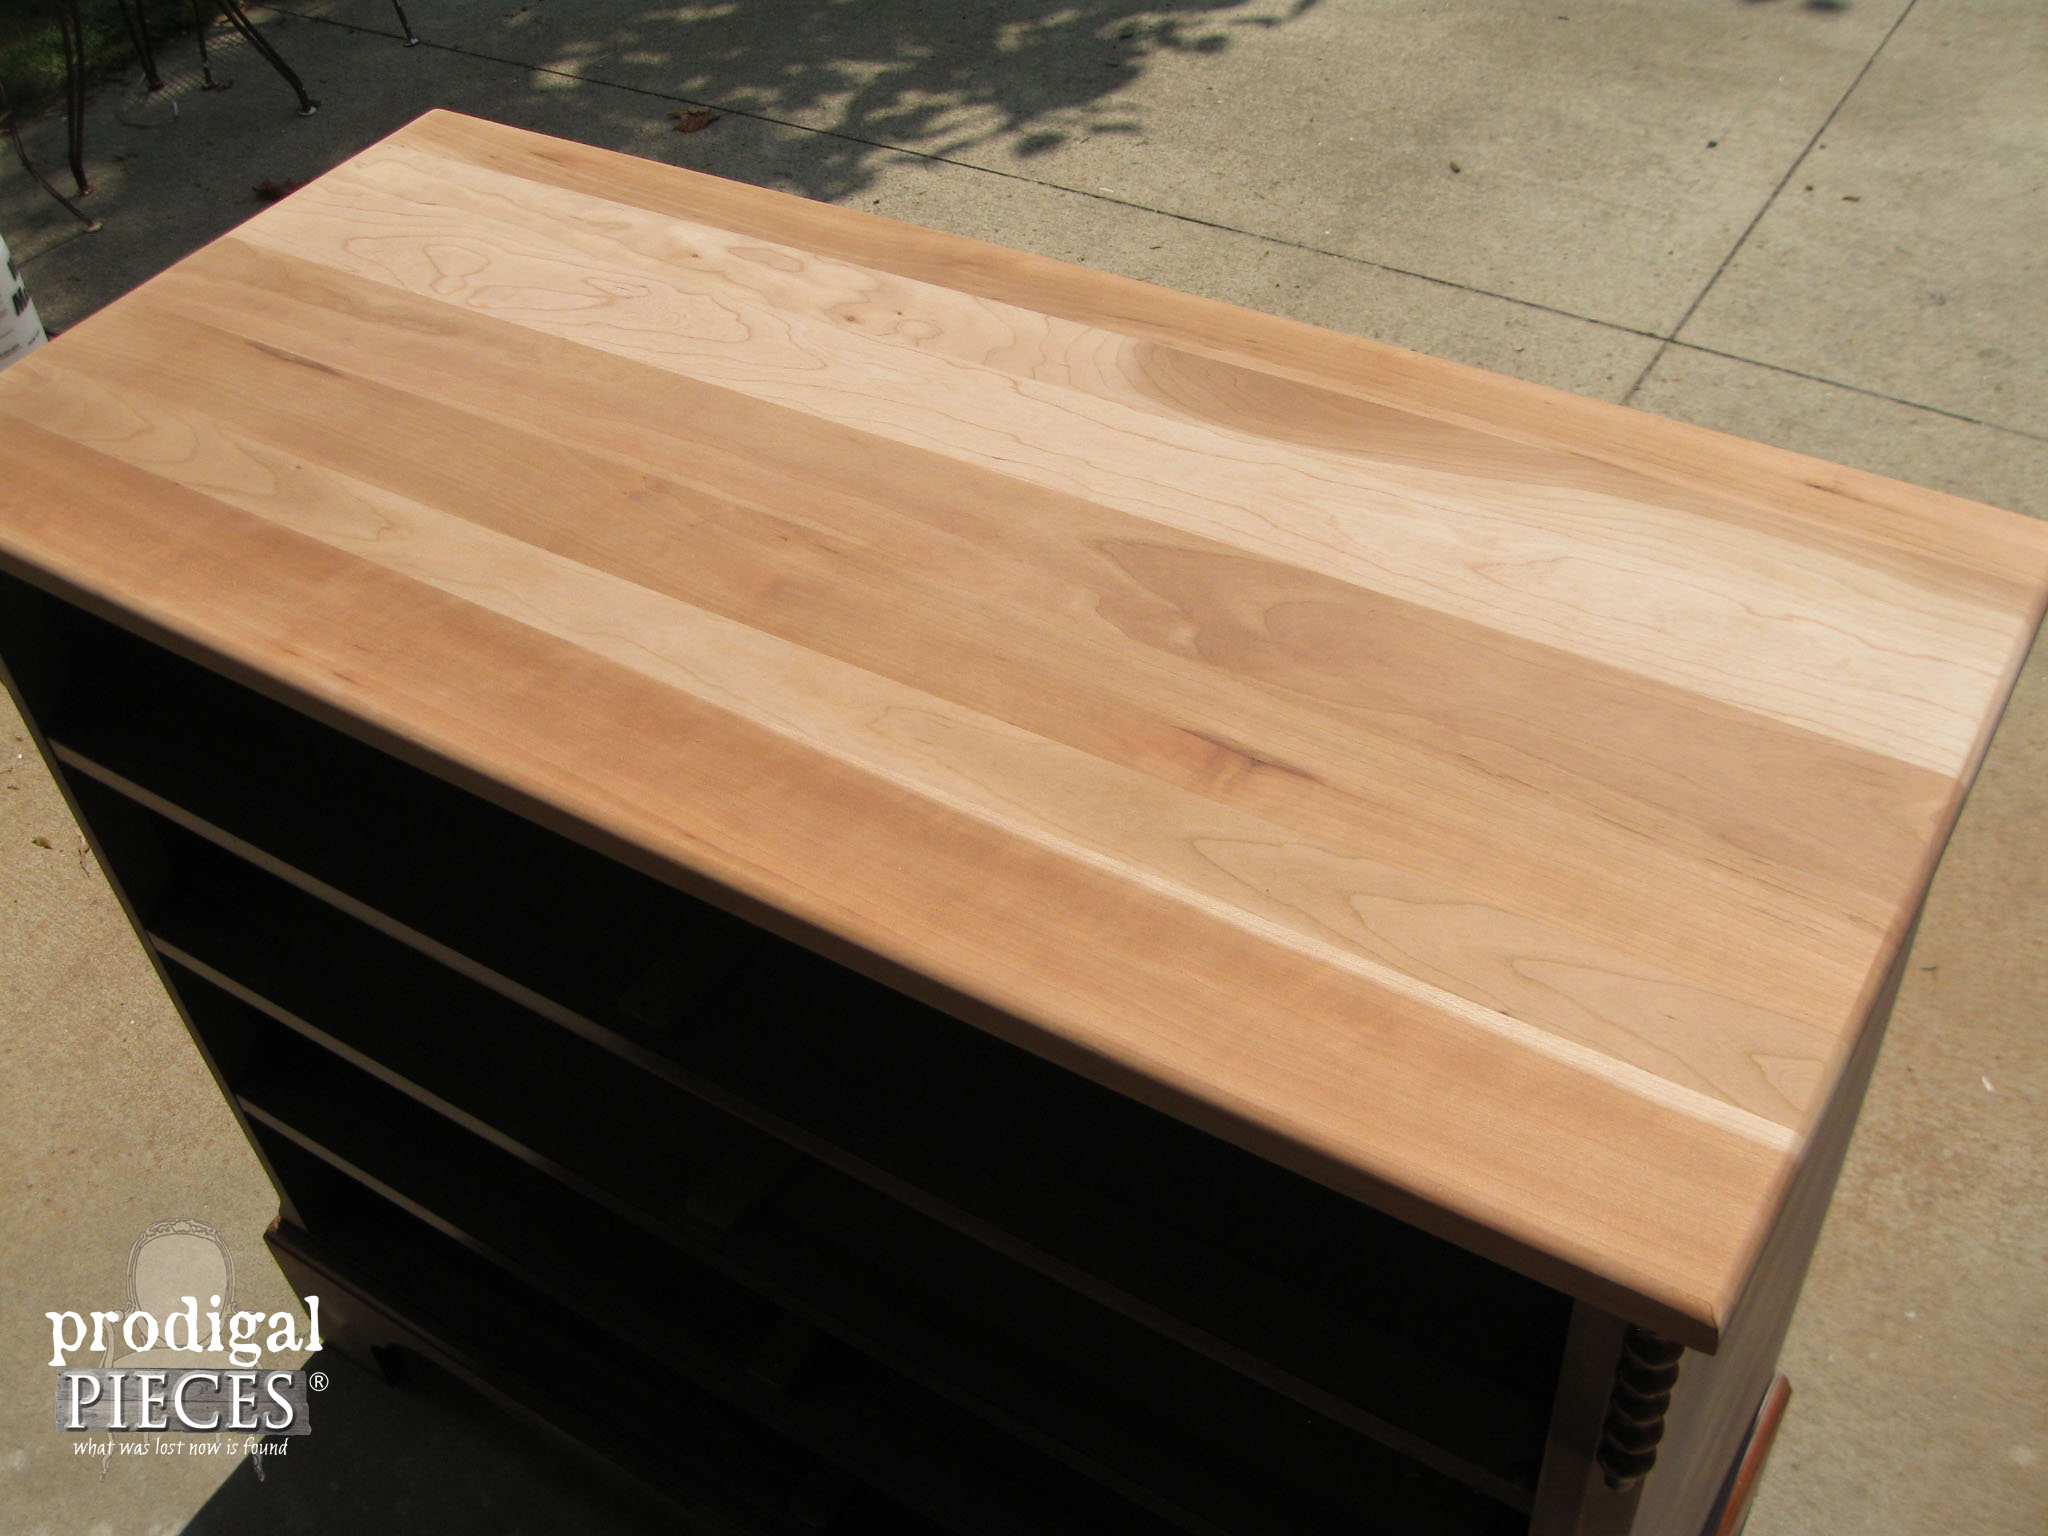 Sanded Cherry Chest of Drawers | Prodigal Pieces | www.prodigalpieces.com